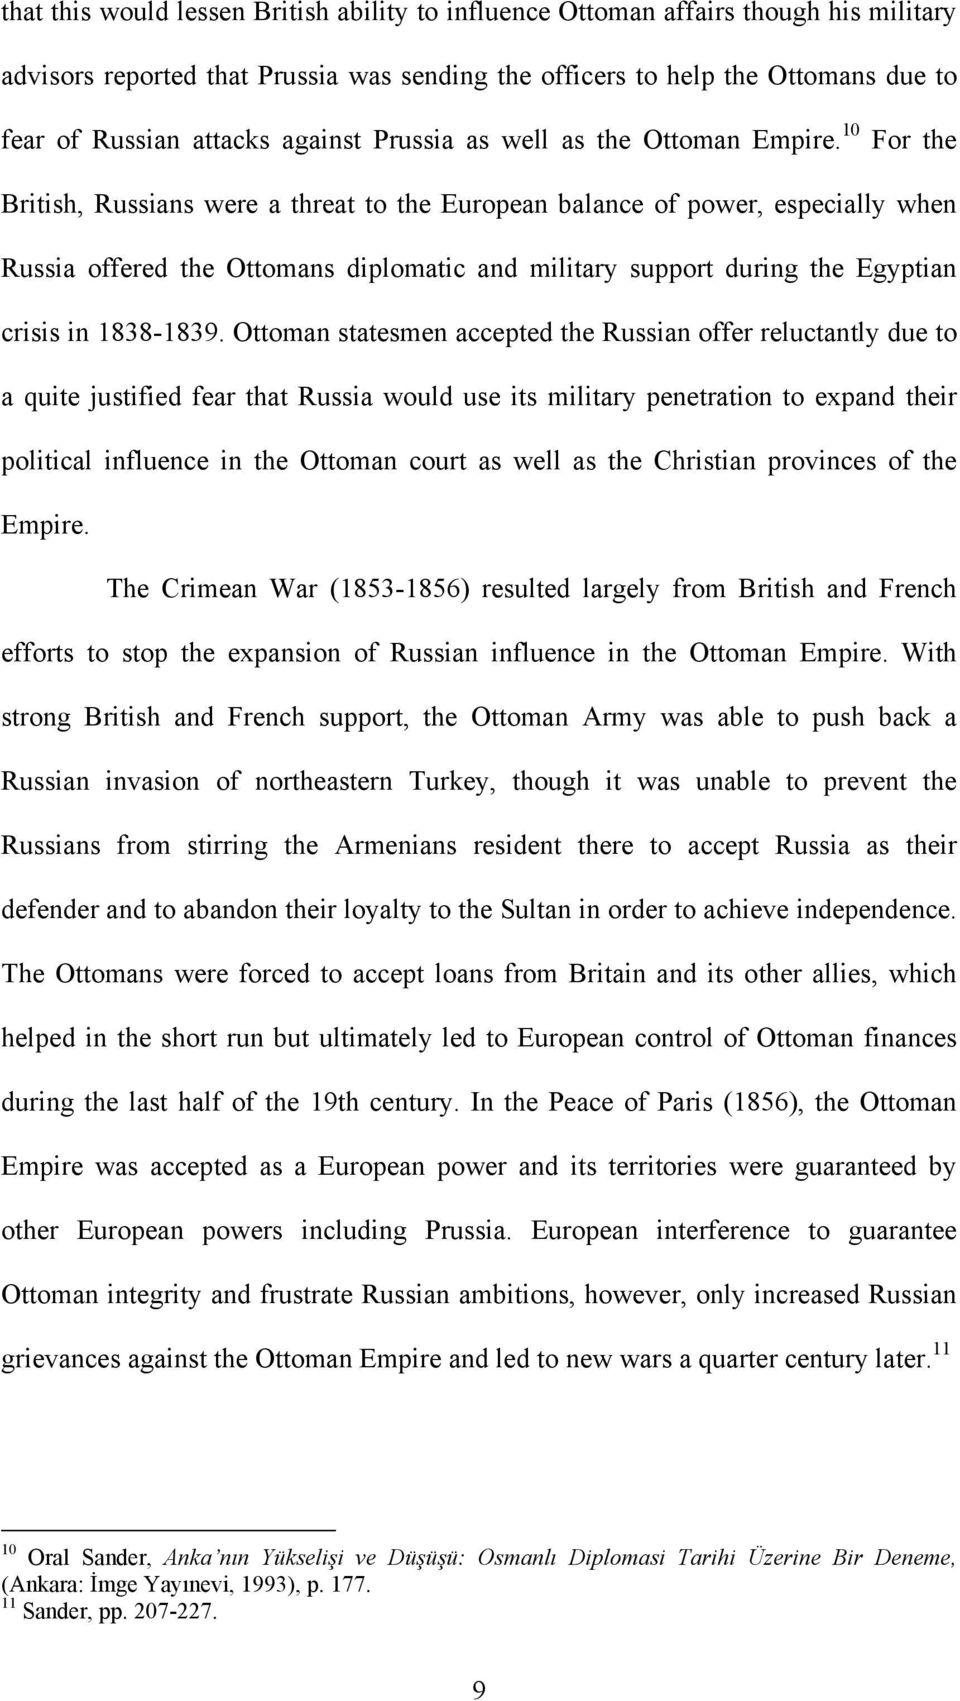 10 For the British, Russians were a threat to the European balance of power, especially when Russia offered the Ottomans diplomatic and military support during the Egyptian crisis in 1838-1839.